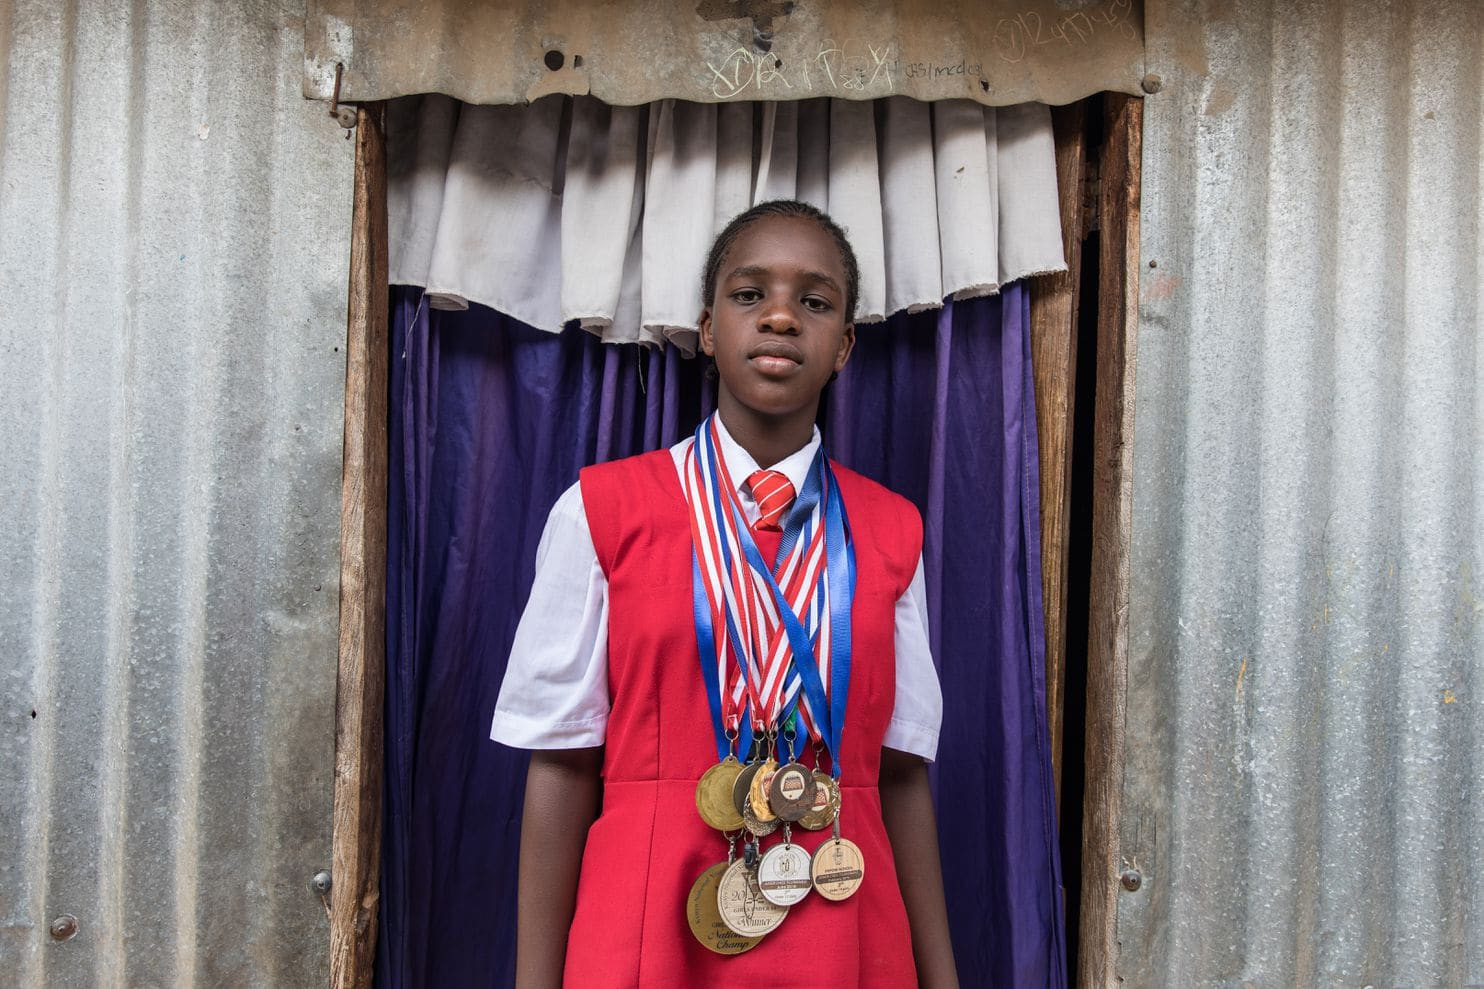 Sarah Momanyi has won a large collection of medals in various chess tournaments. (Sarah Waiswa for The Washington Post)